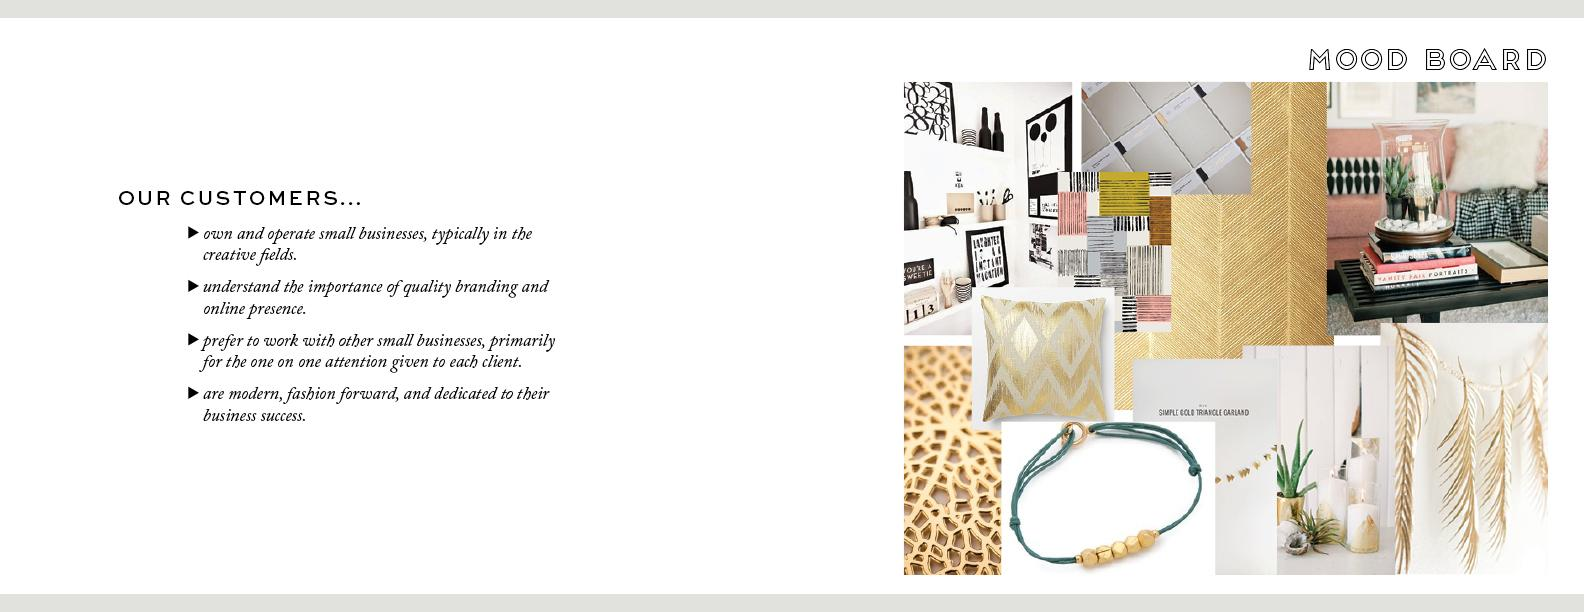 Laura James Studio Brand guide - image 3 - student project